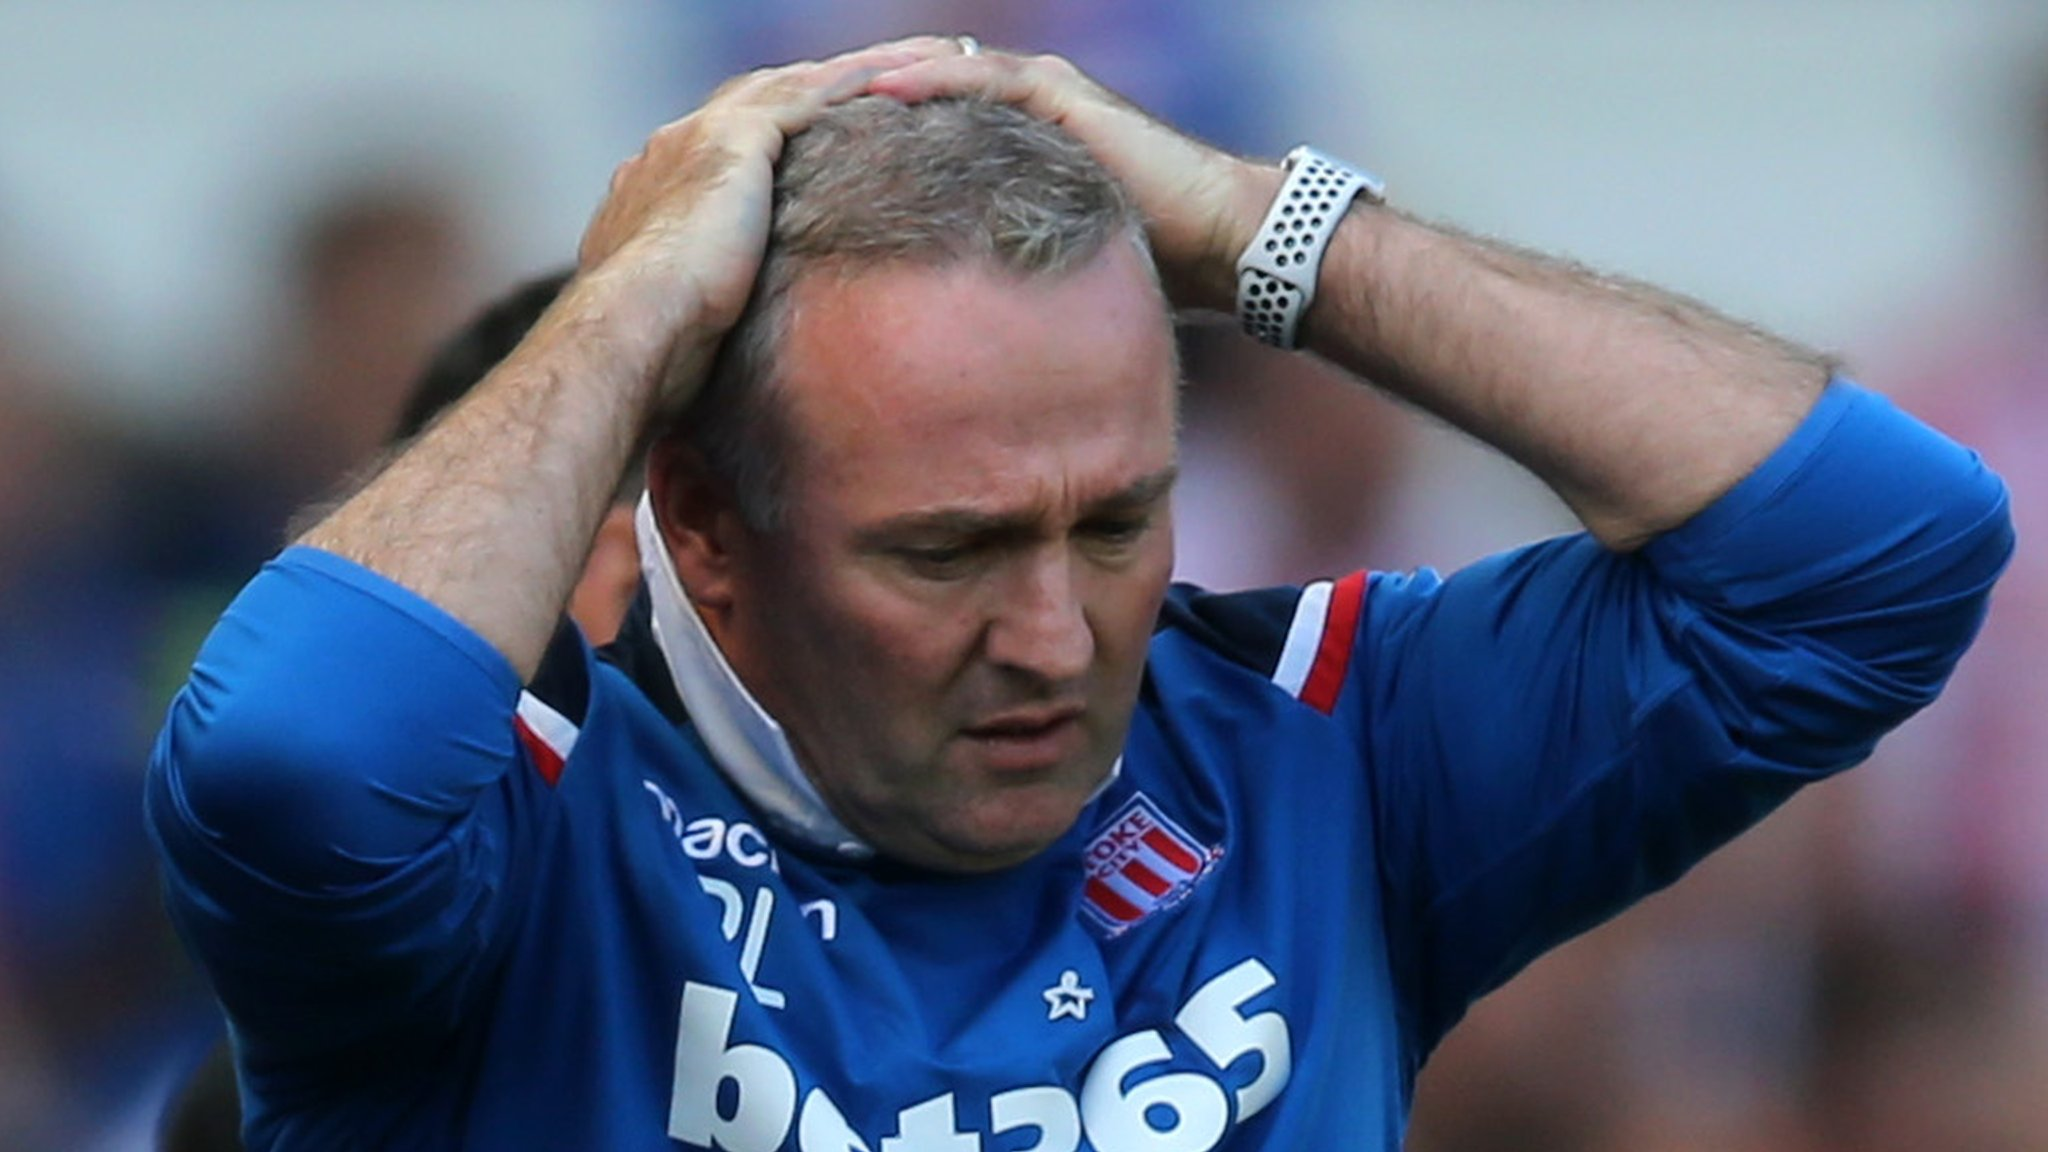 Paul Lambert: Stoke City manager leaves club after relegation